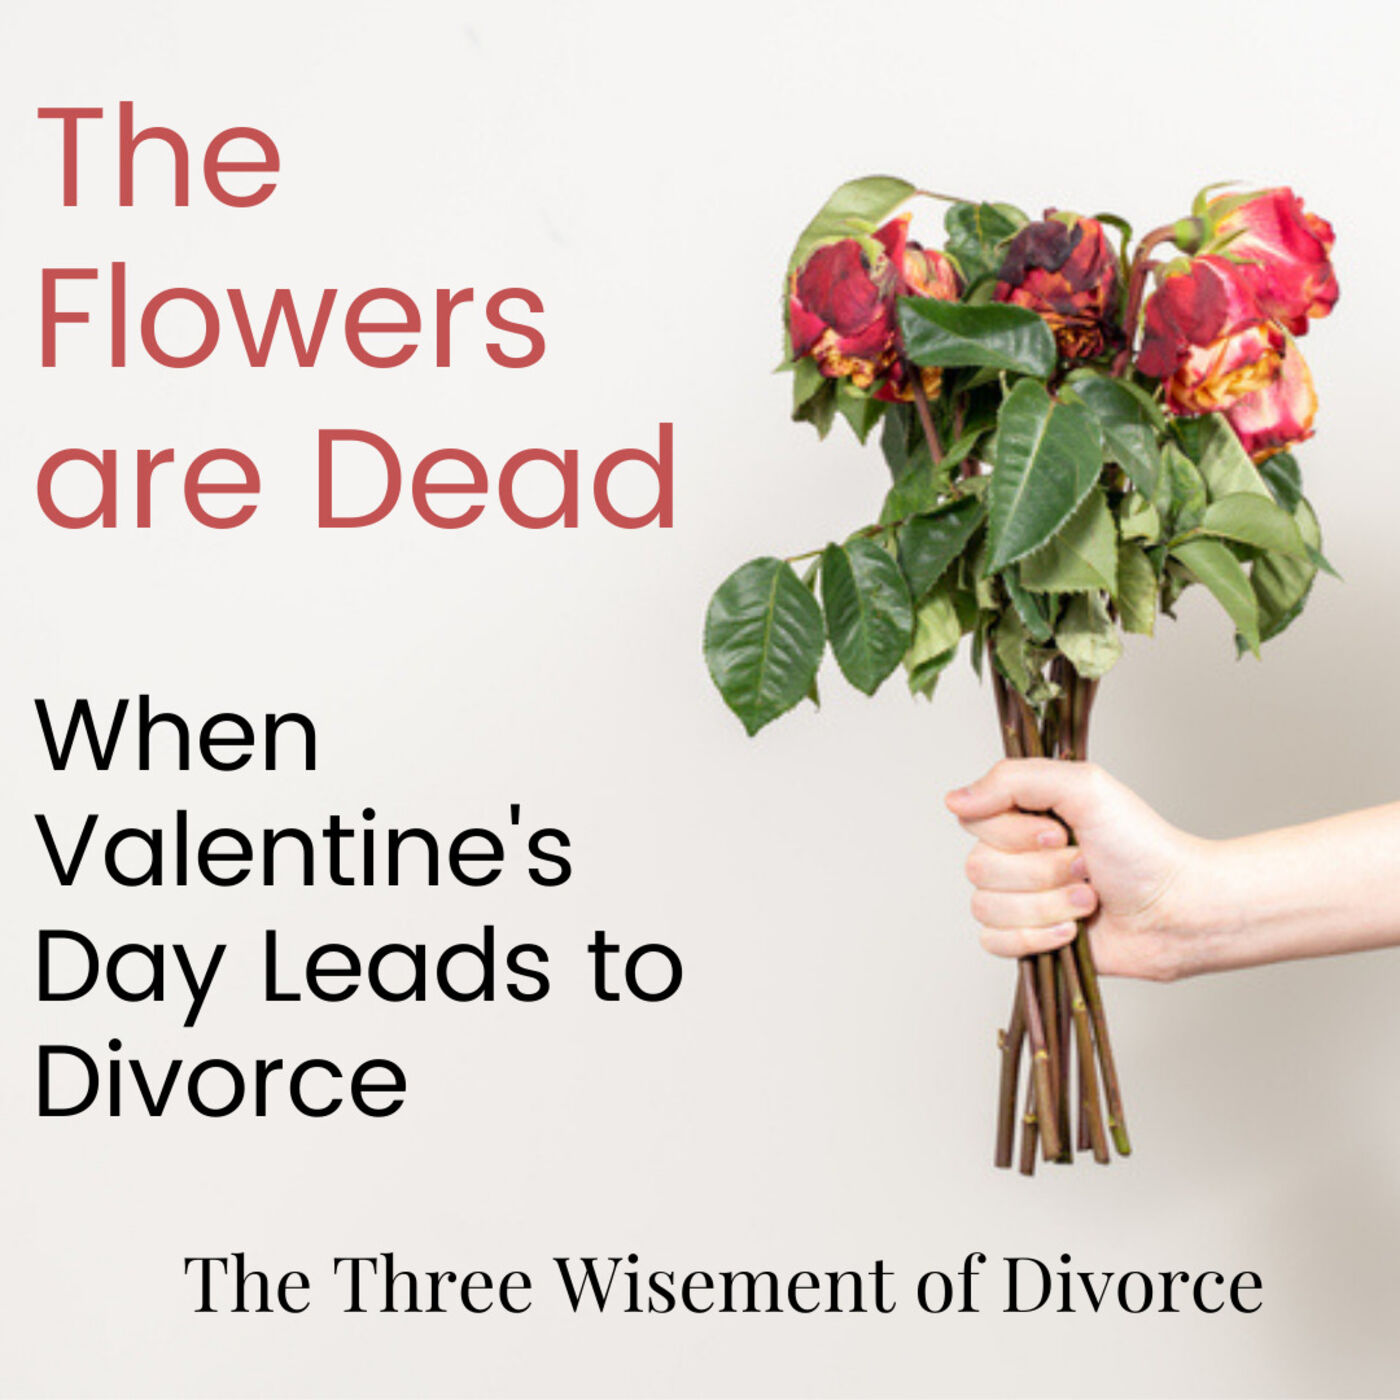 The Flowers are Dead: When Valentine's Day Leads to Divorce